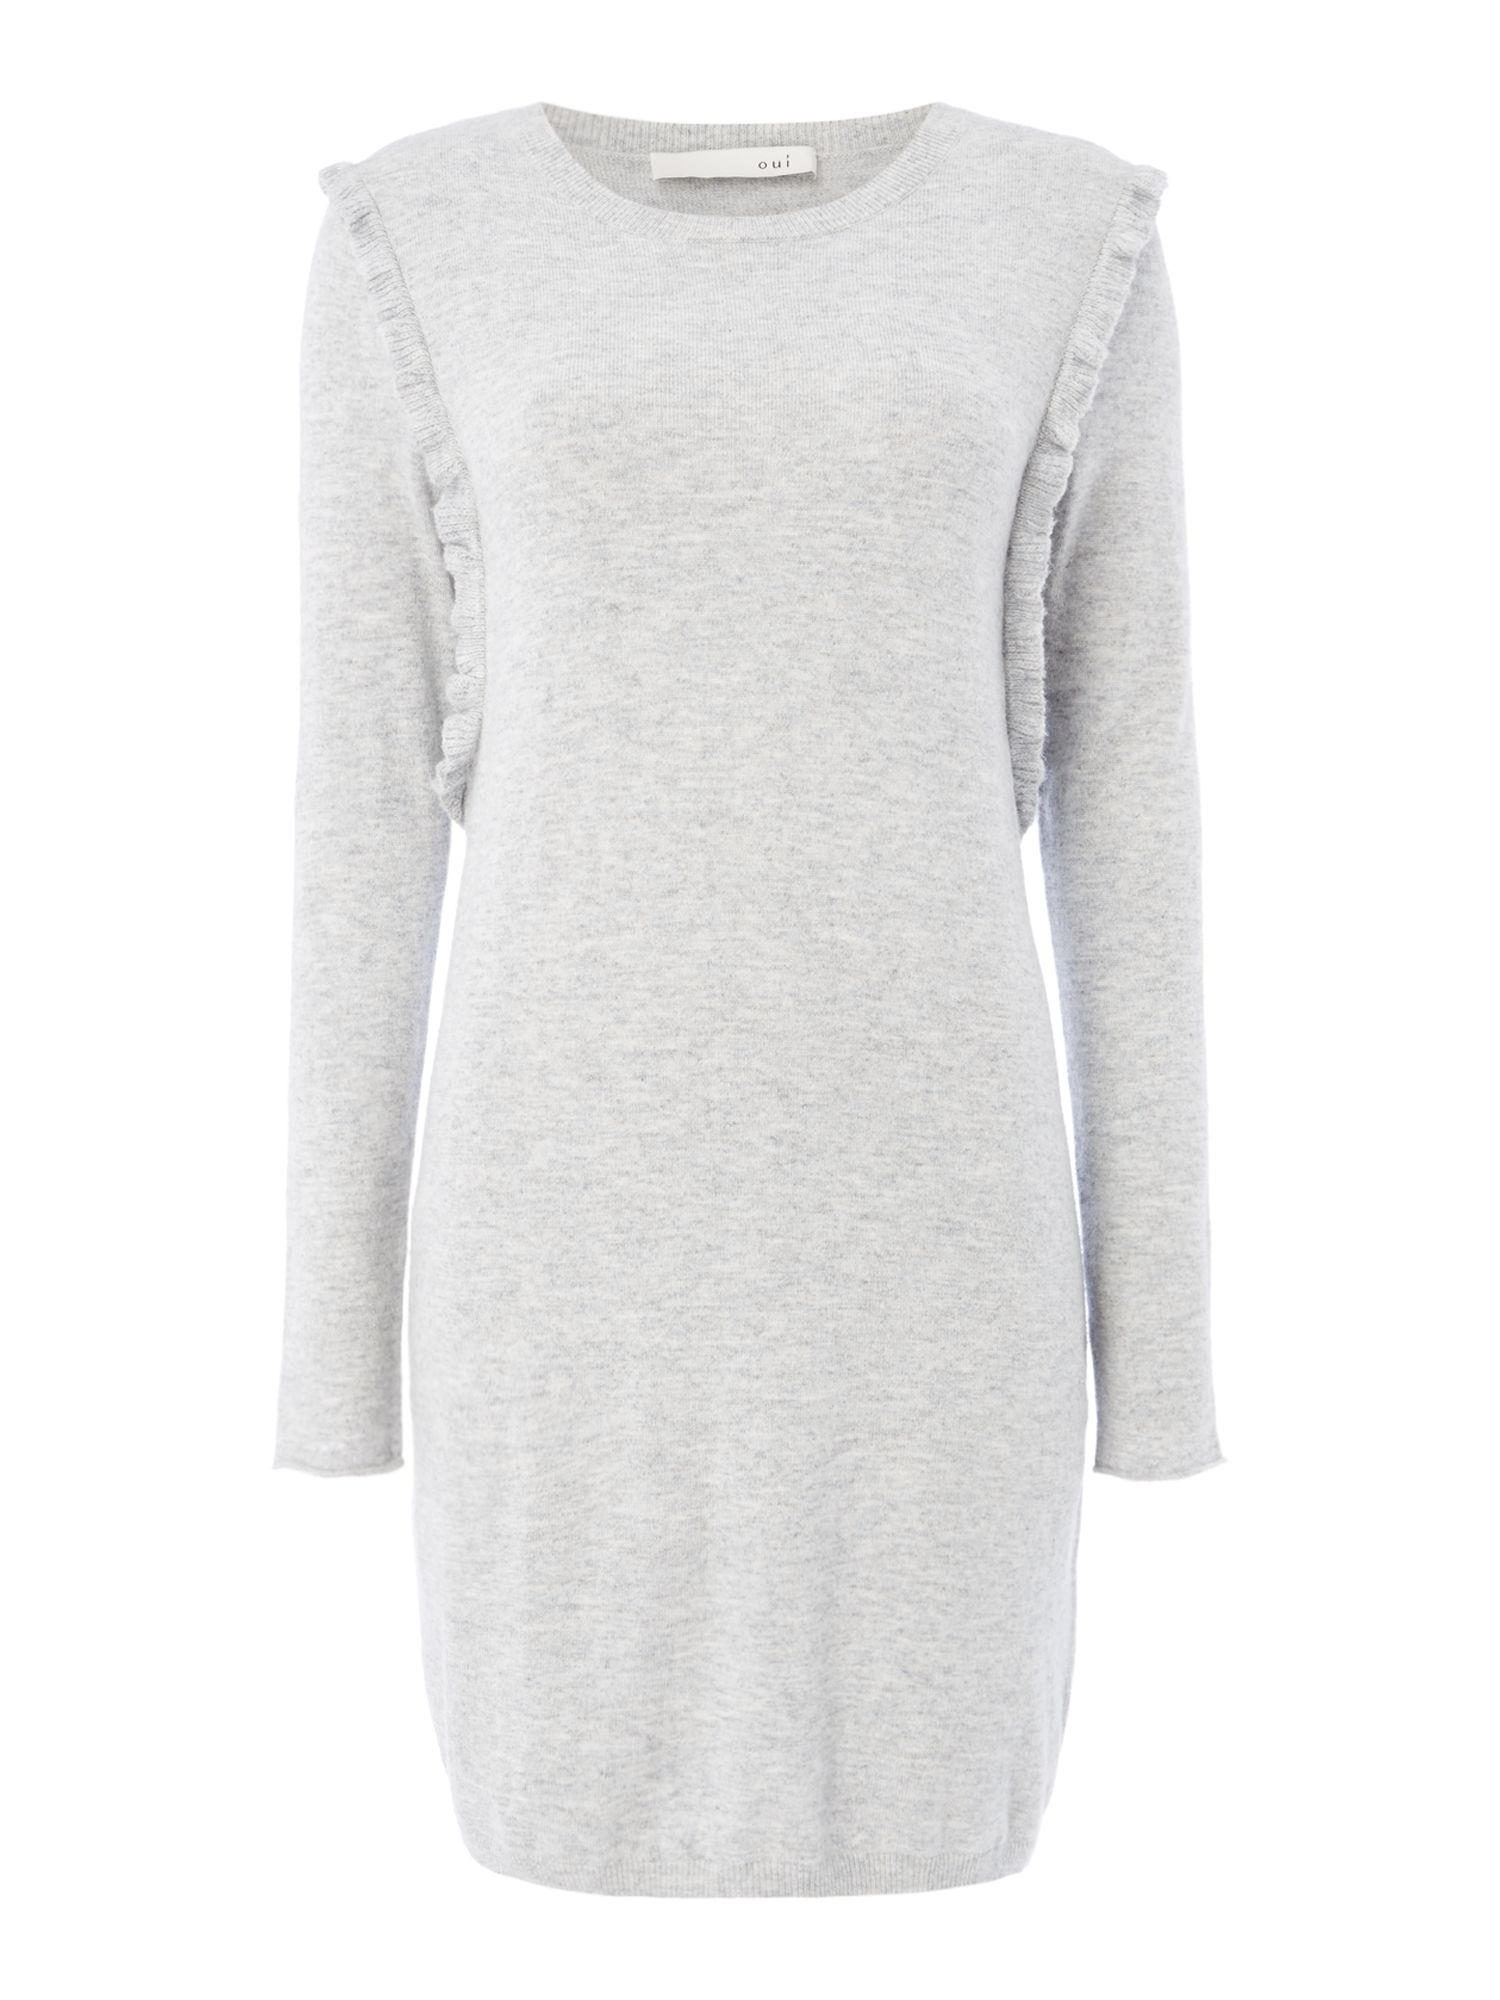 Oui Long line grey knit dress, Light Grey